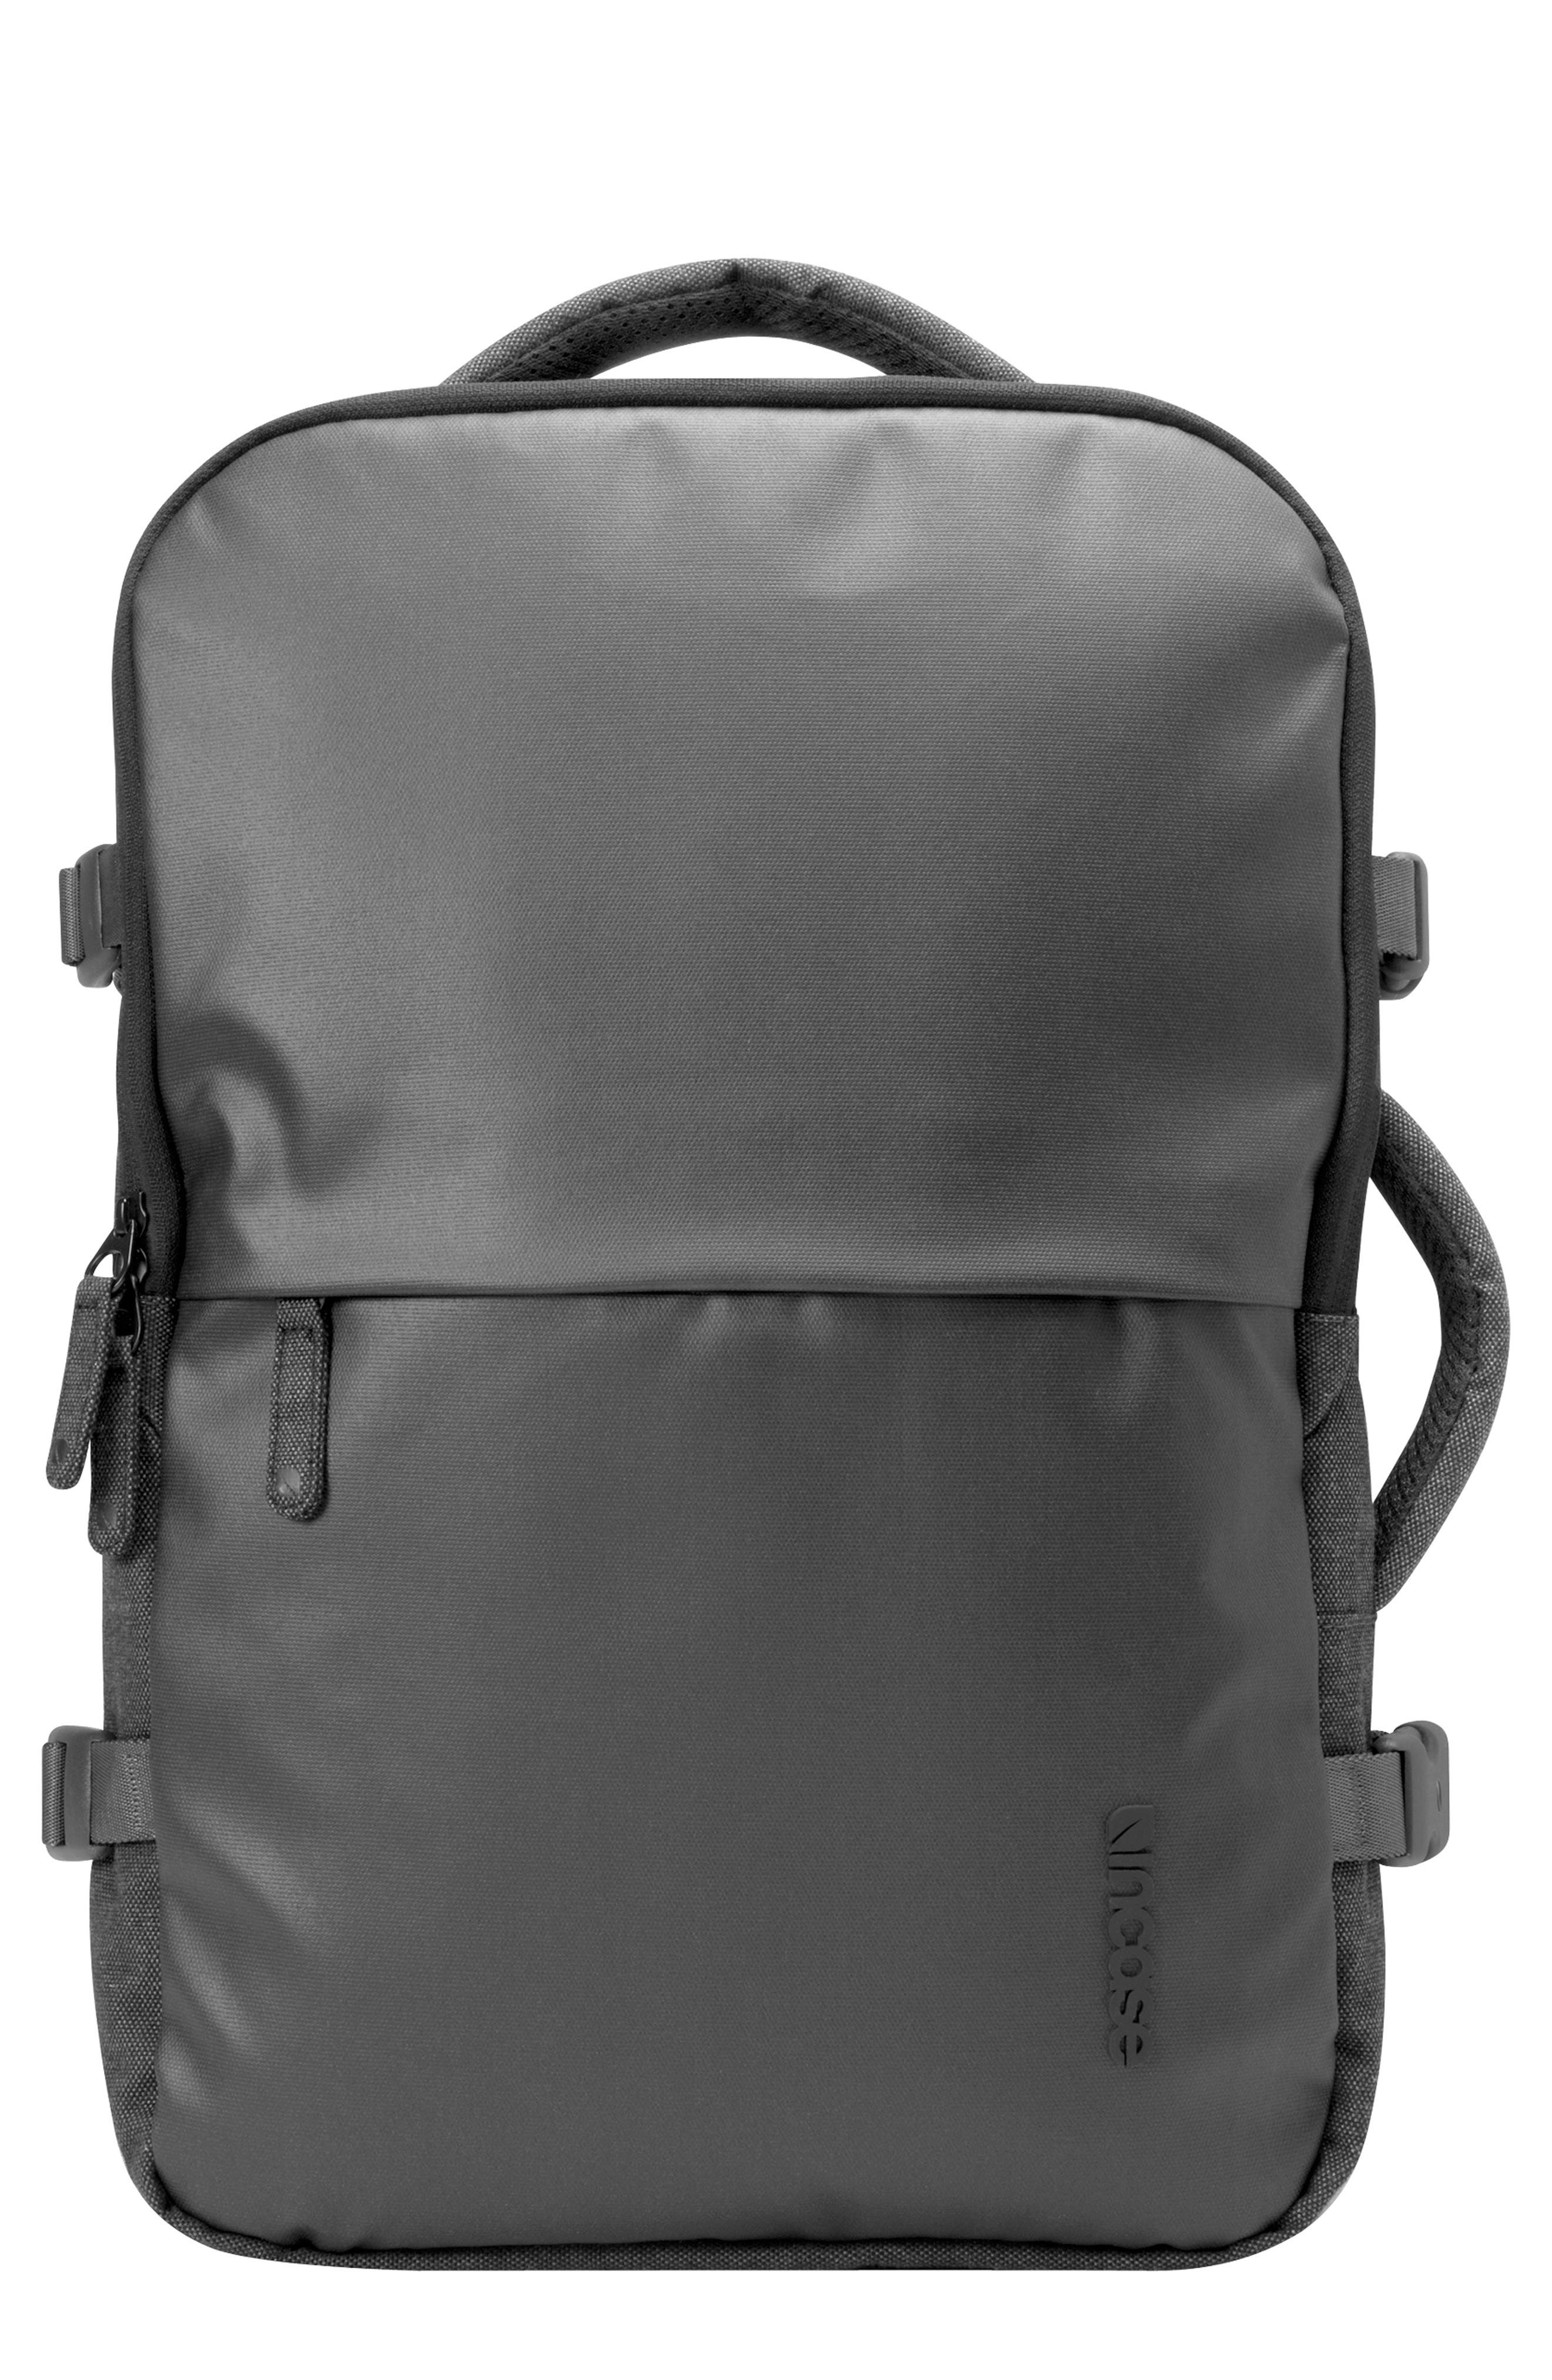 EO Travel Backpack,                         Main,                         color,